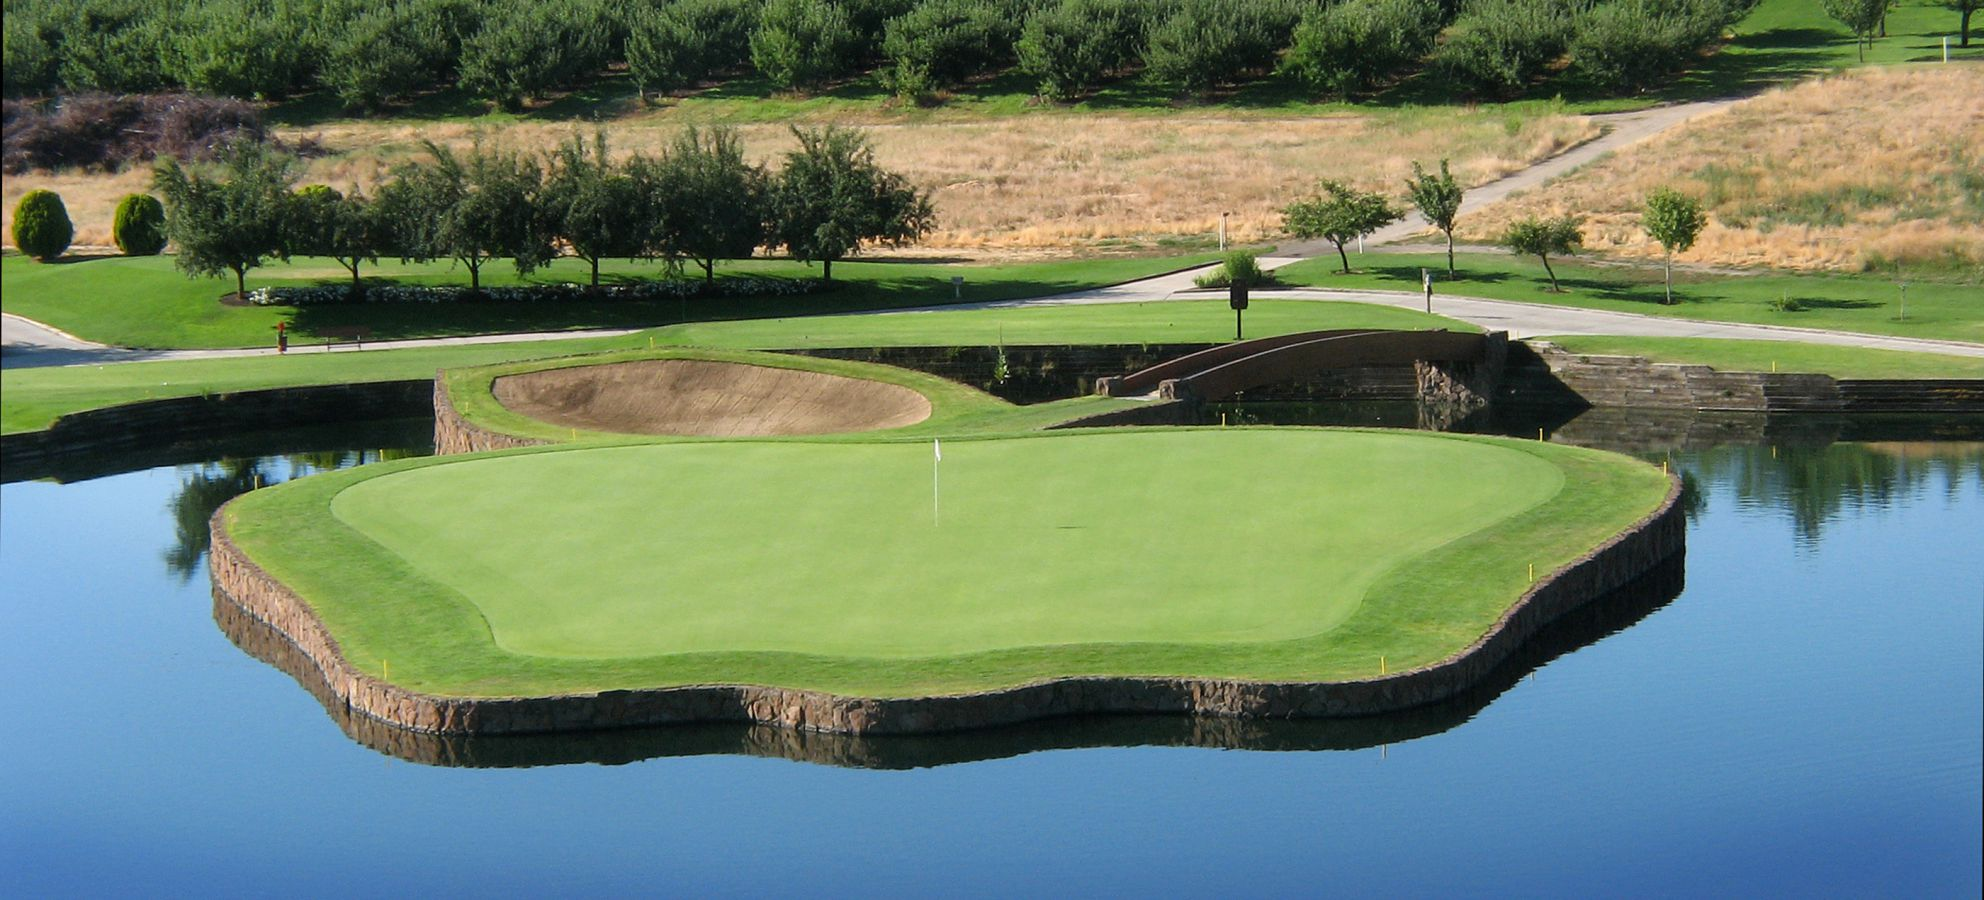 roxburghe-golf-club-1